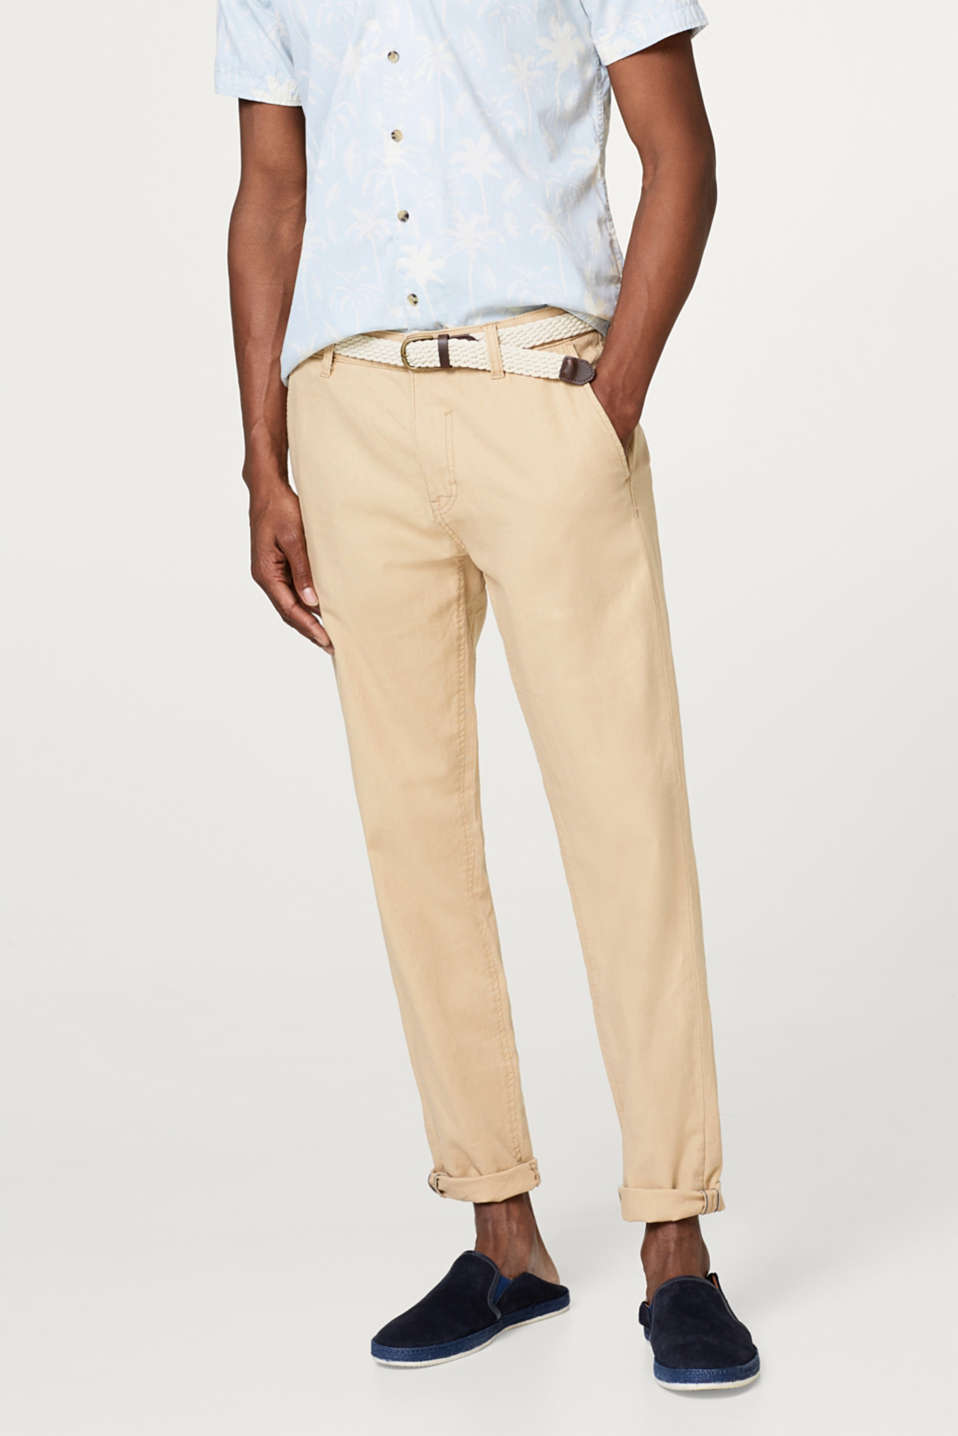 Esprit - Loose trousers with braided belt, in blended linen